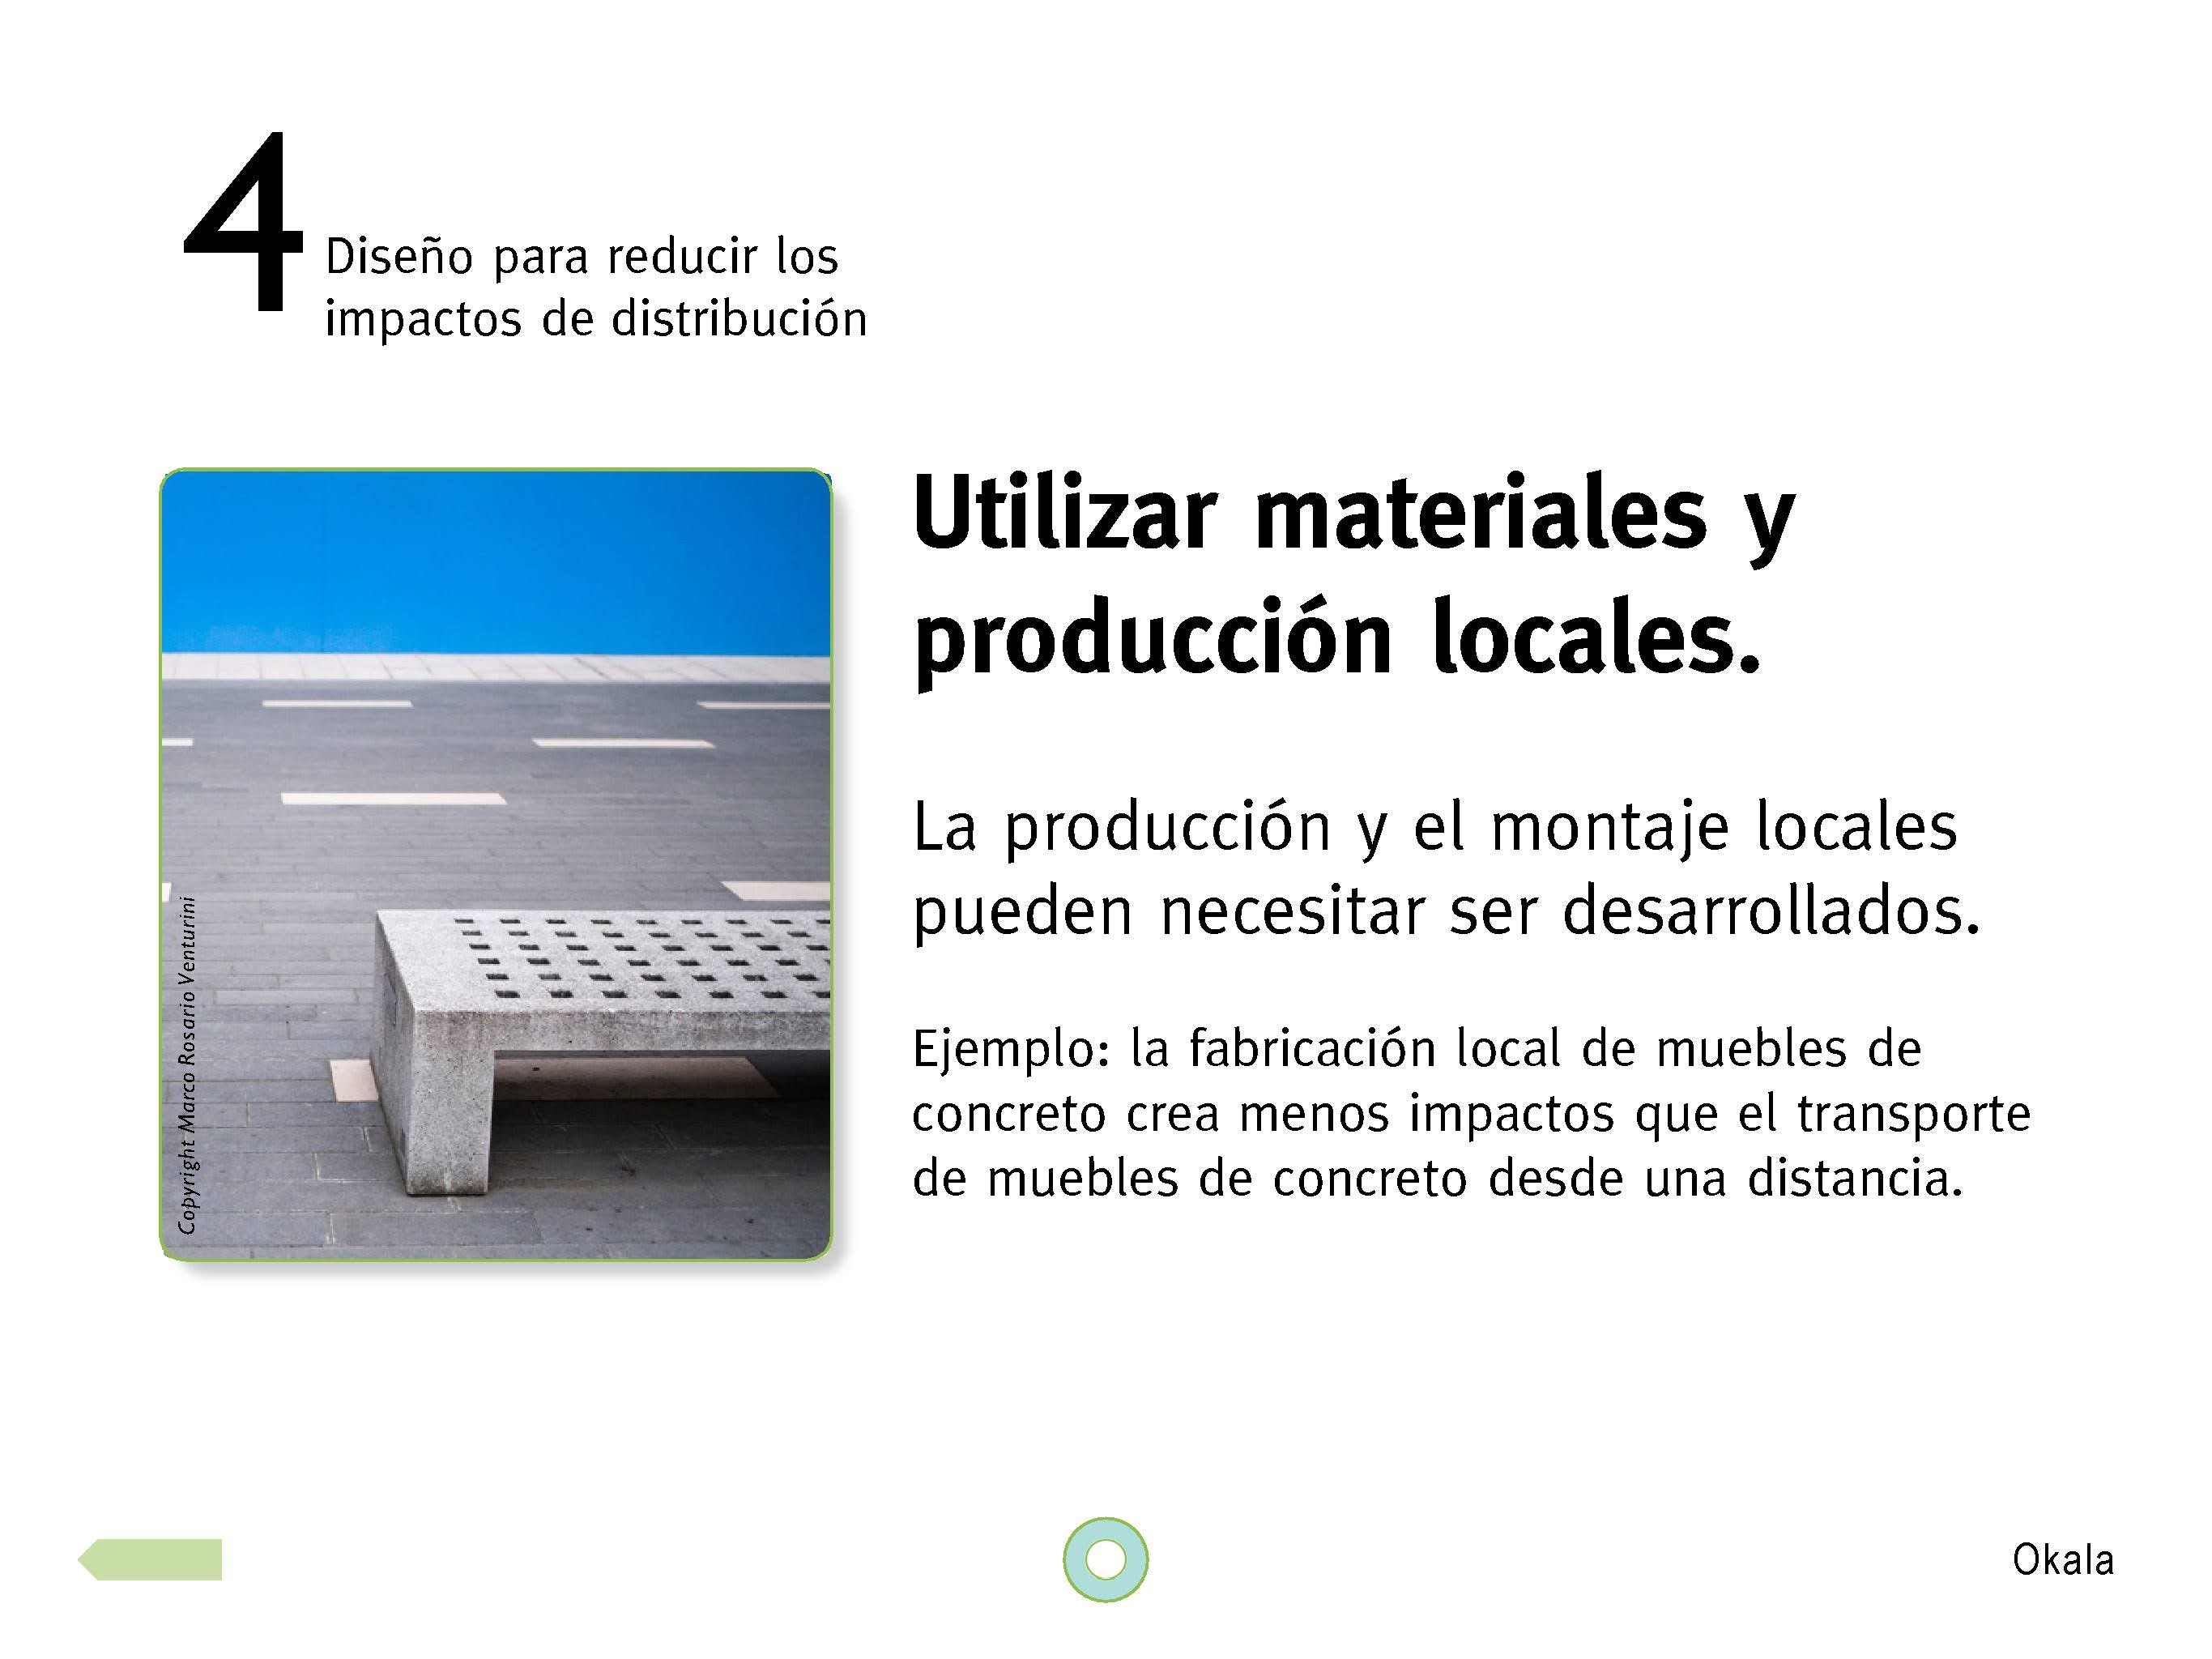 okala-ecodesign-strategy-guide-2012-spanish.new_page_26-1